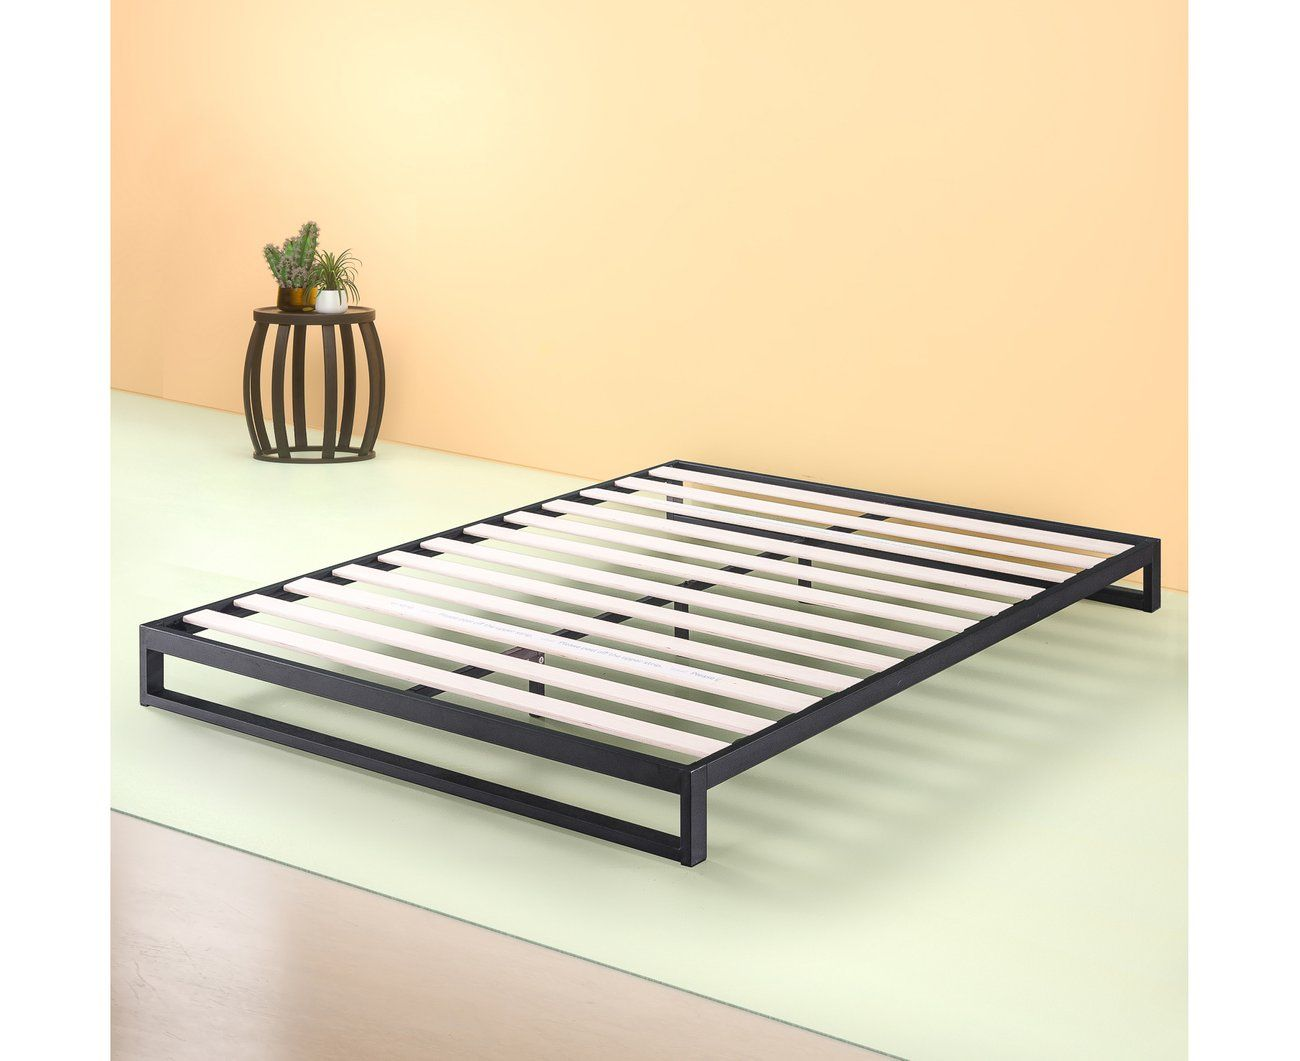 Zinus Trisha 18cm Heavy Duty Low Profile Platform Base Metal Bed